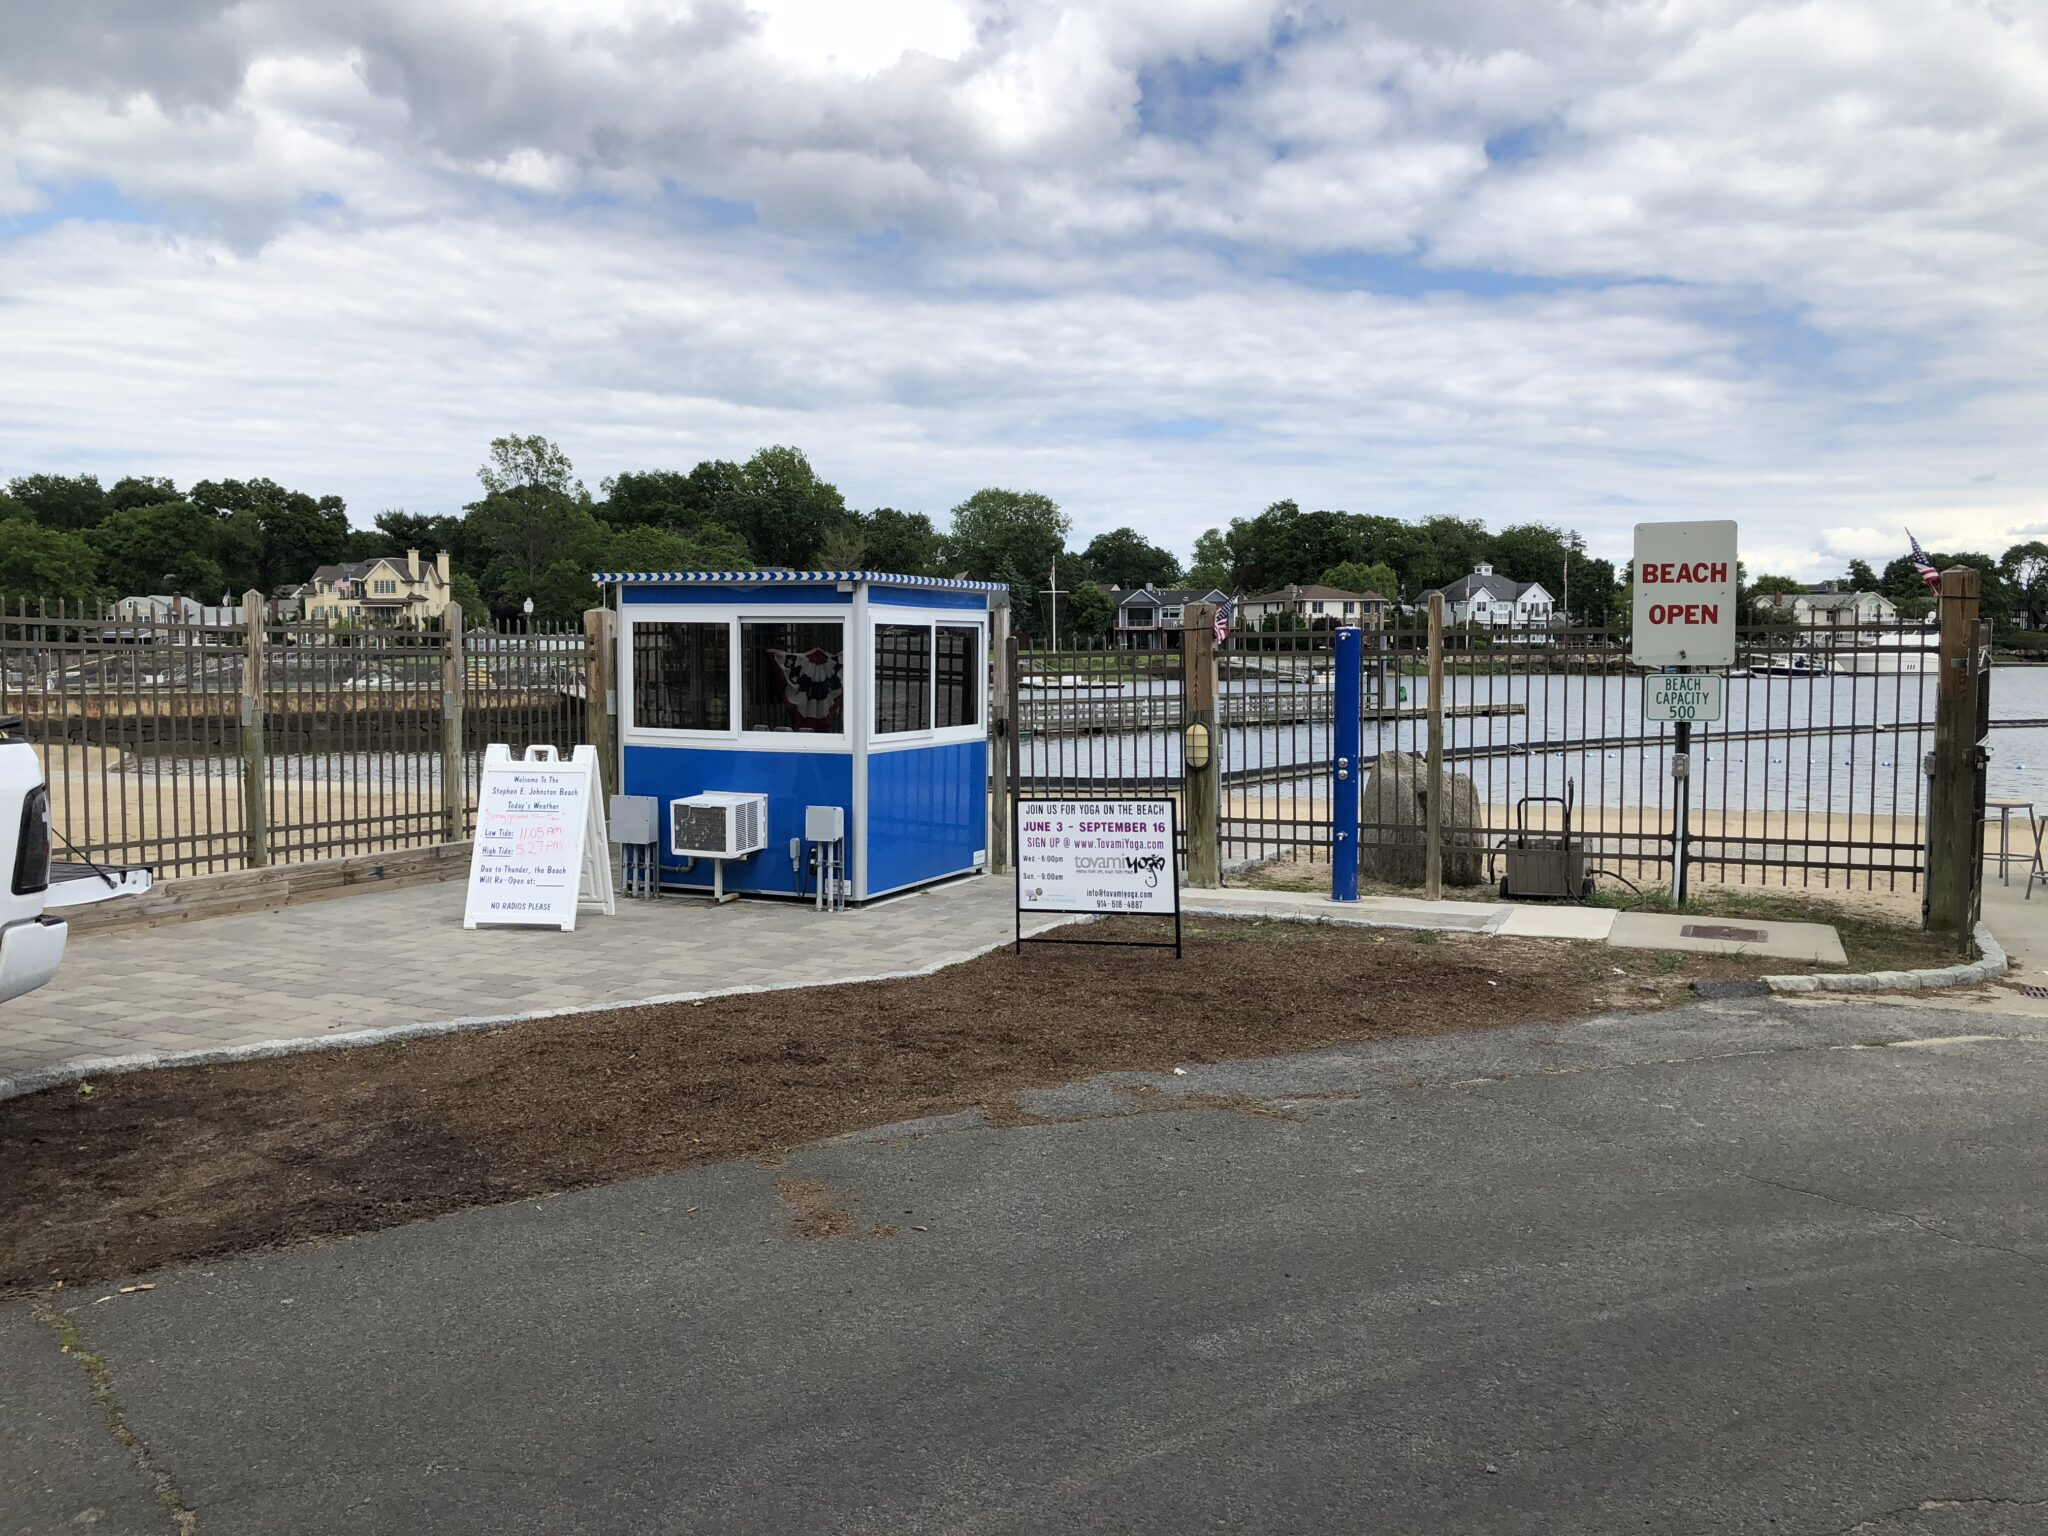 6x6 Ticket Booth In Mamaroneck, NY outside Beach entrance with Built-in AC, and Baseboard Heater, and Perimeter Security Fencing